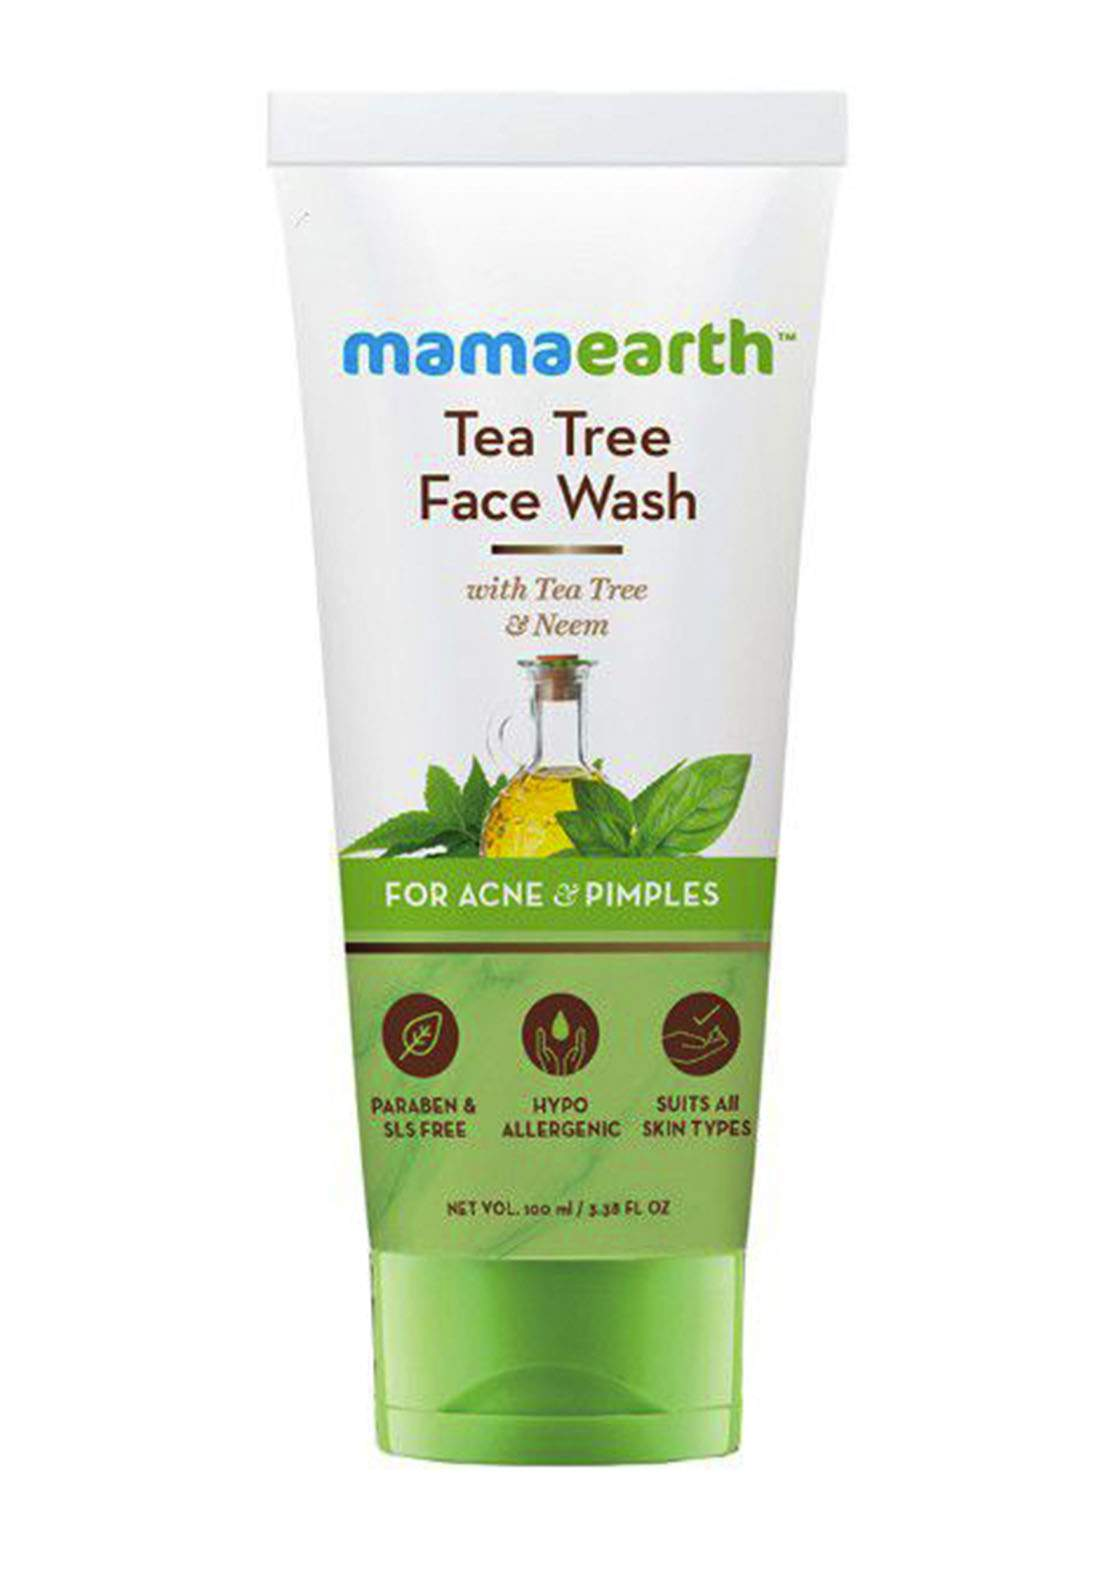 MamaEarth Tea Tree Natural for Acne & Pimples Wash Face Wash 100ml غسول للوجه